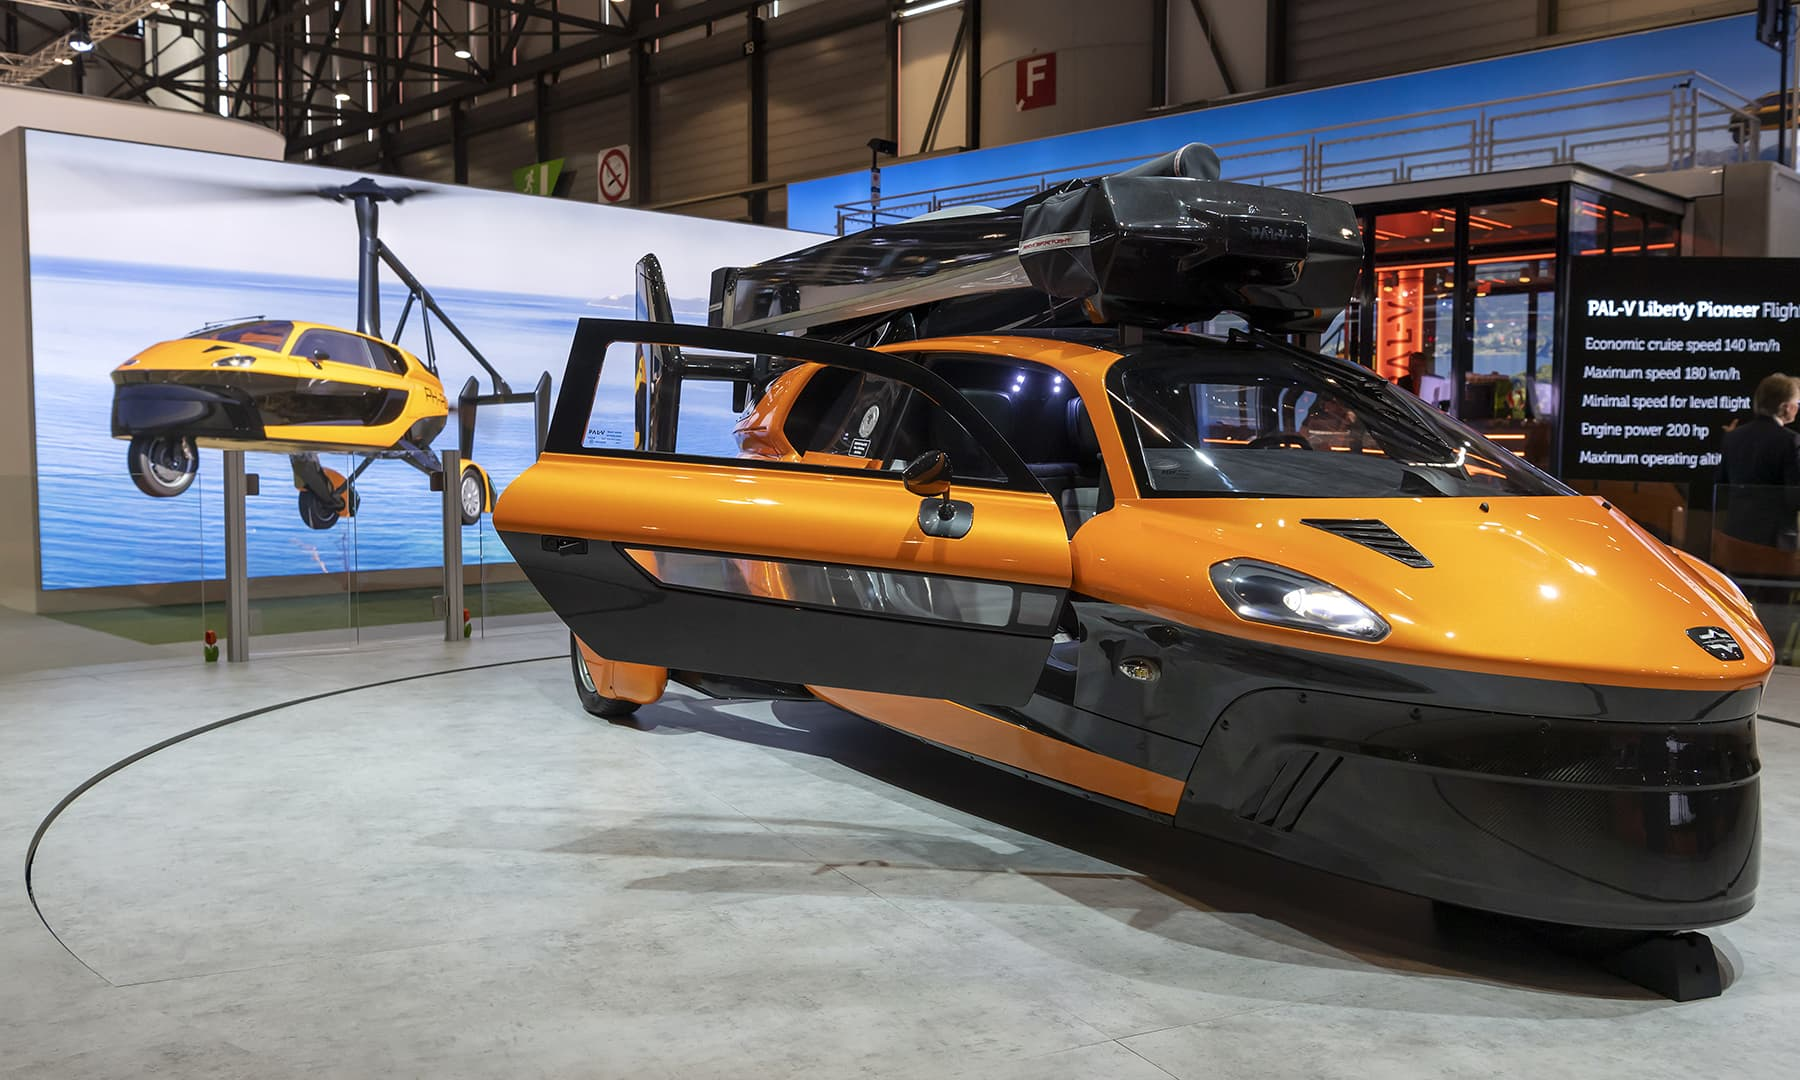 The new flying car 'PAL-V Liberty Pioneer Edition' is presented during the press day at the 89th Geneva International Motor Show. — AP